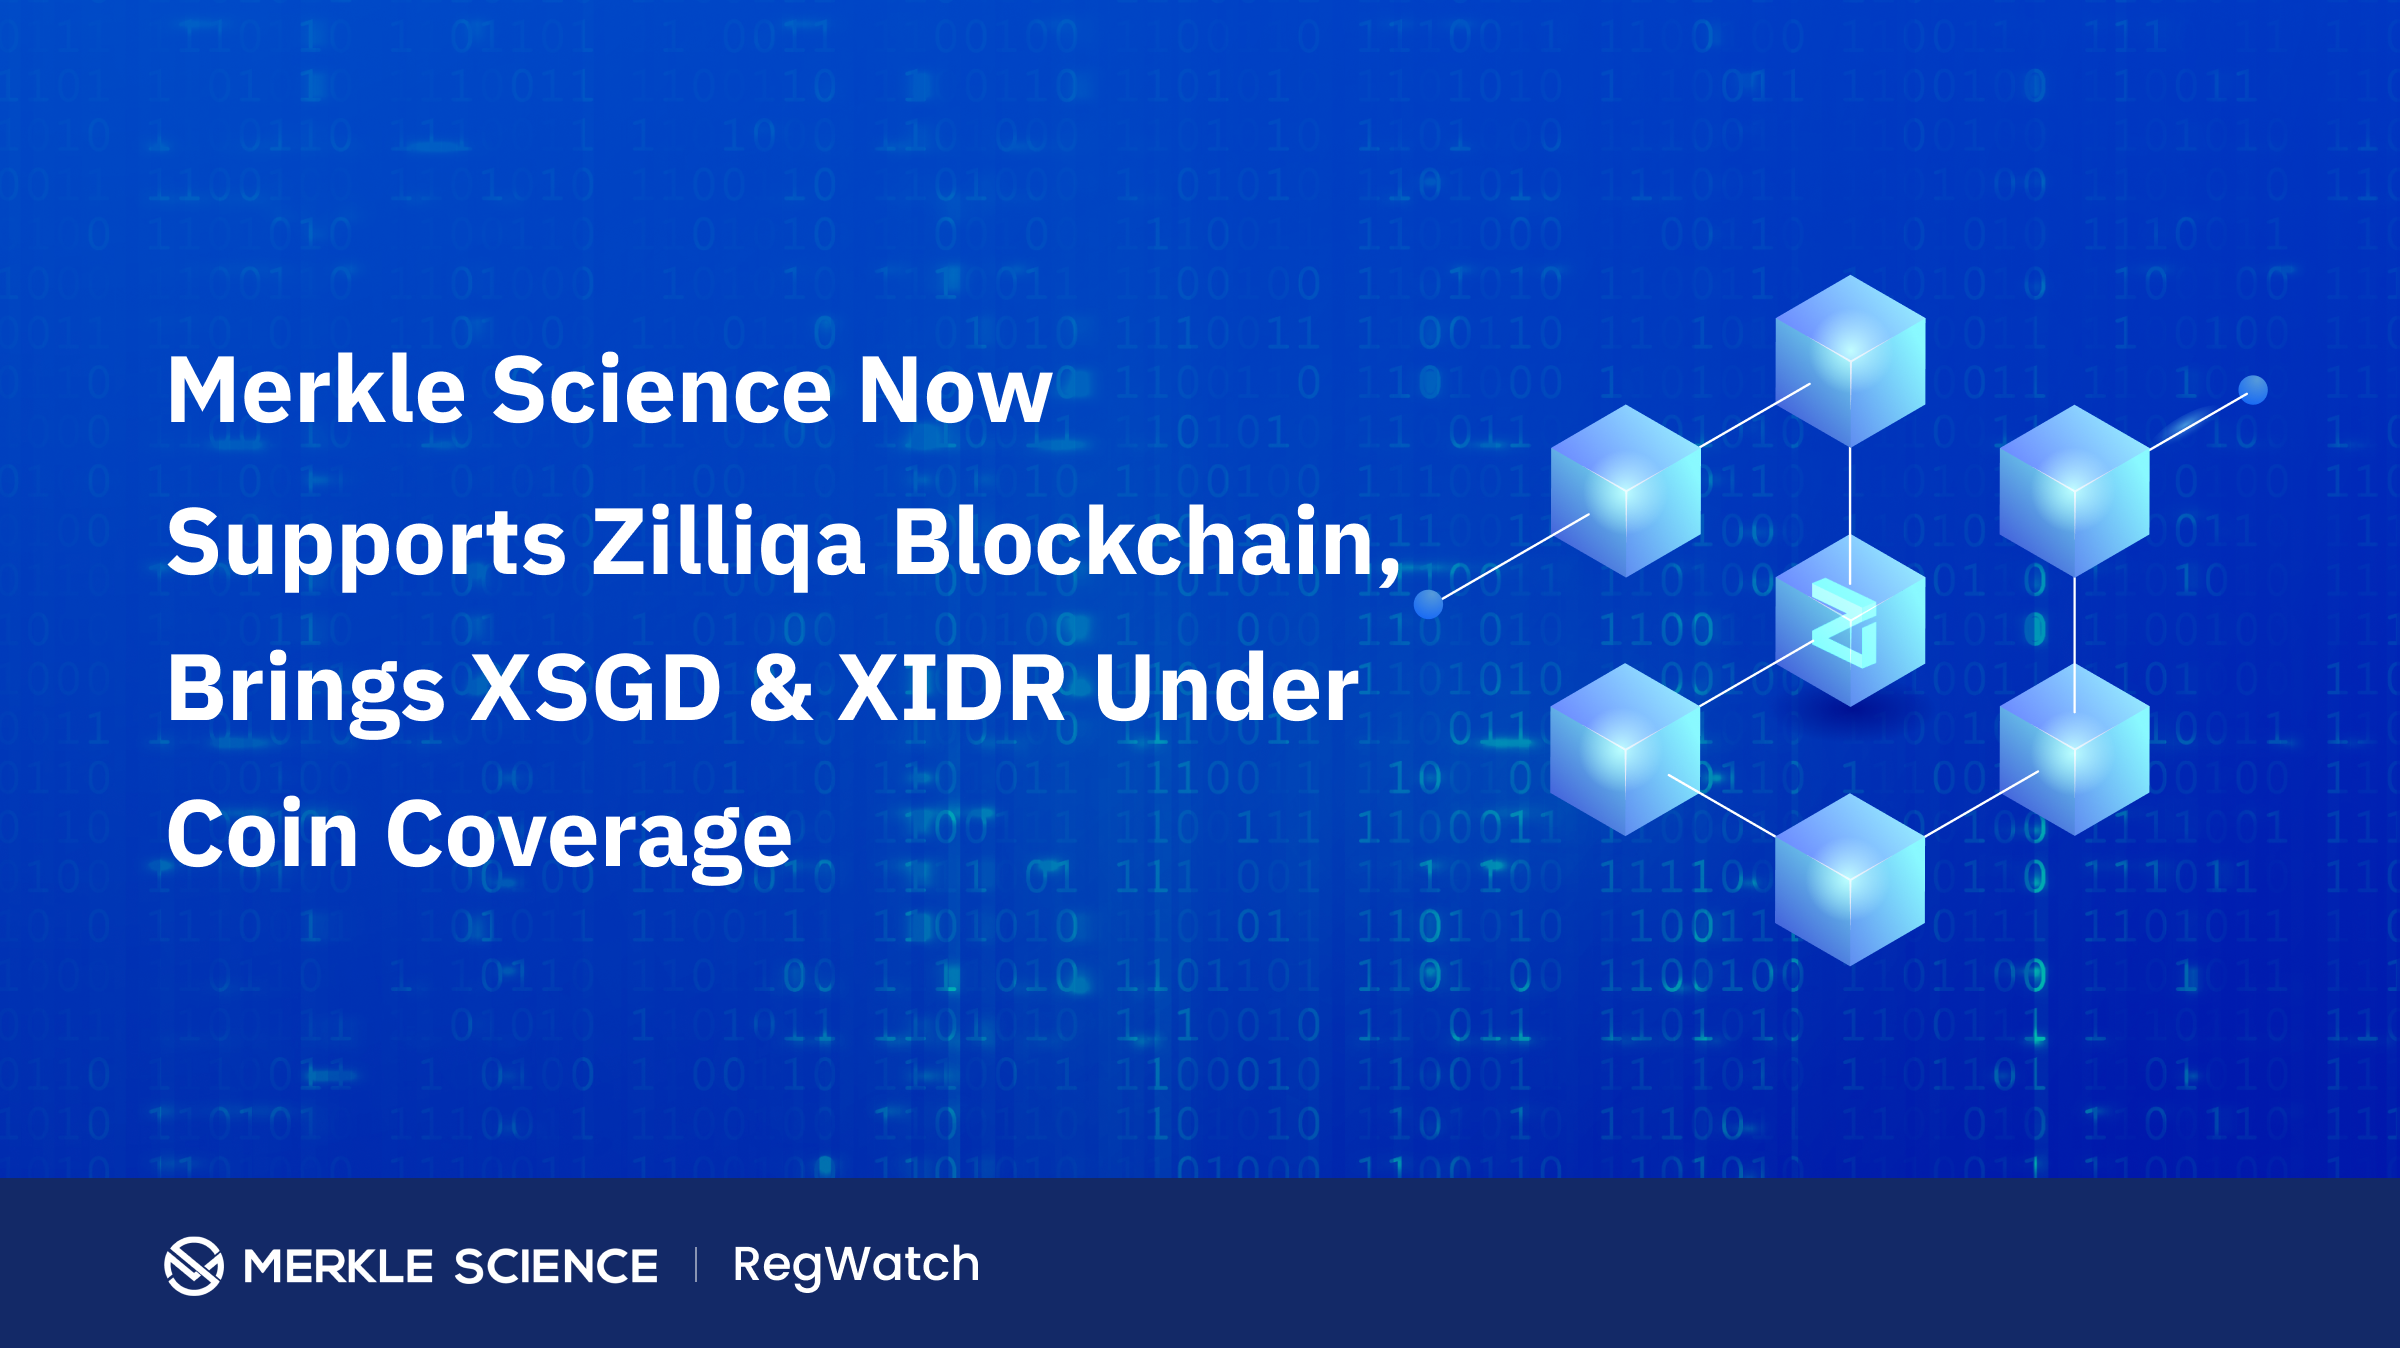 Merkle Science Extends Coverage to Include Zilliqa Blockchain Supporting XSGD and XIDR tokens